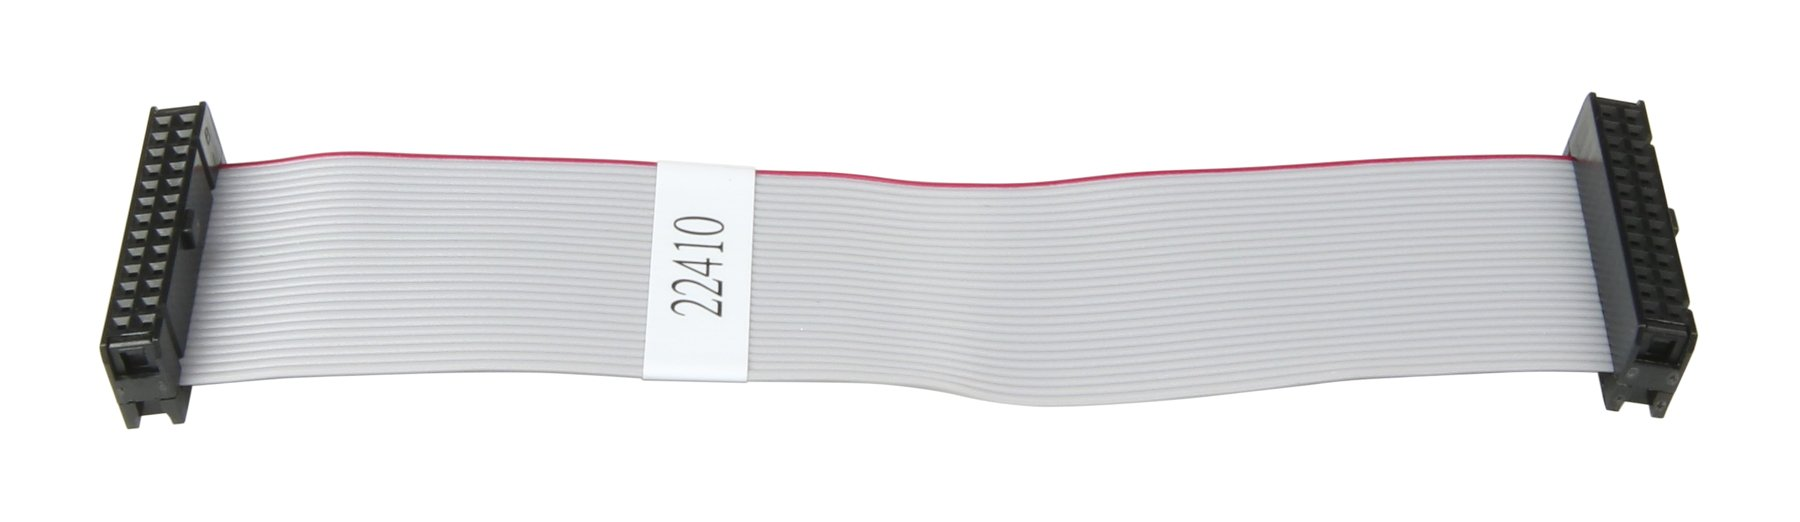 26-Pin Ribbon Cable for Electro 3